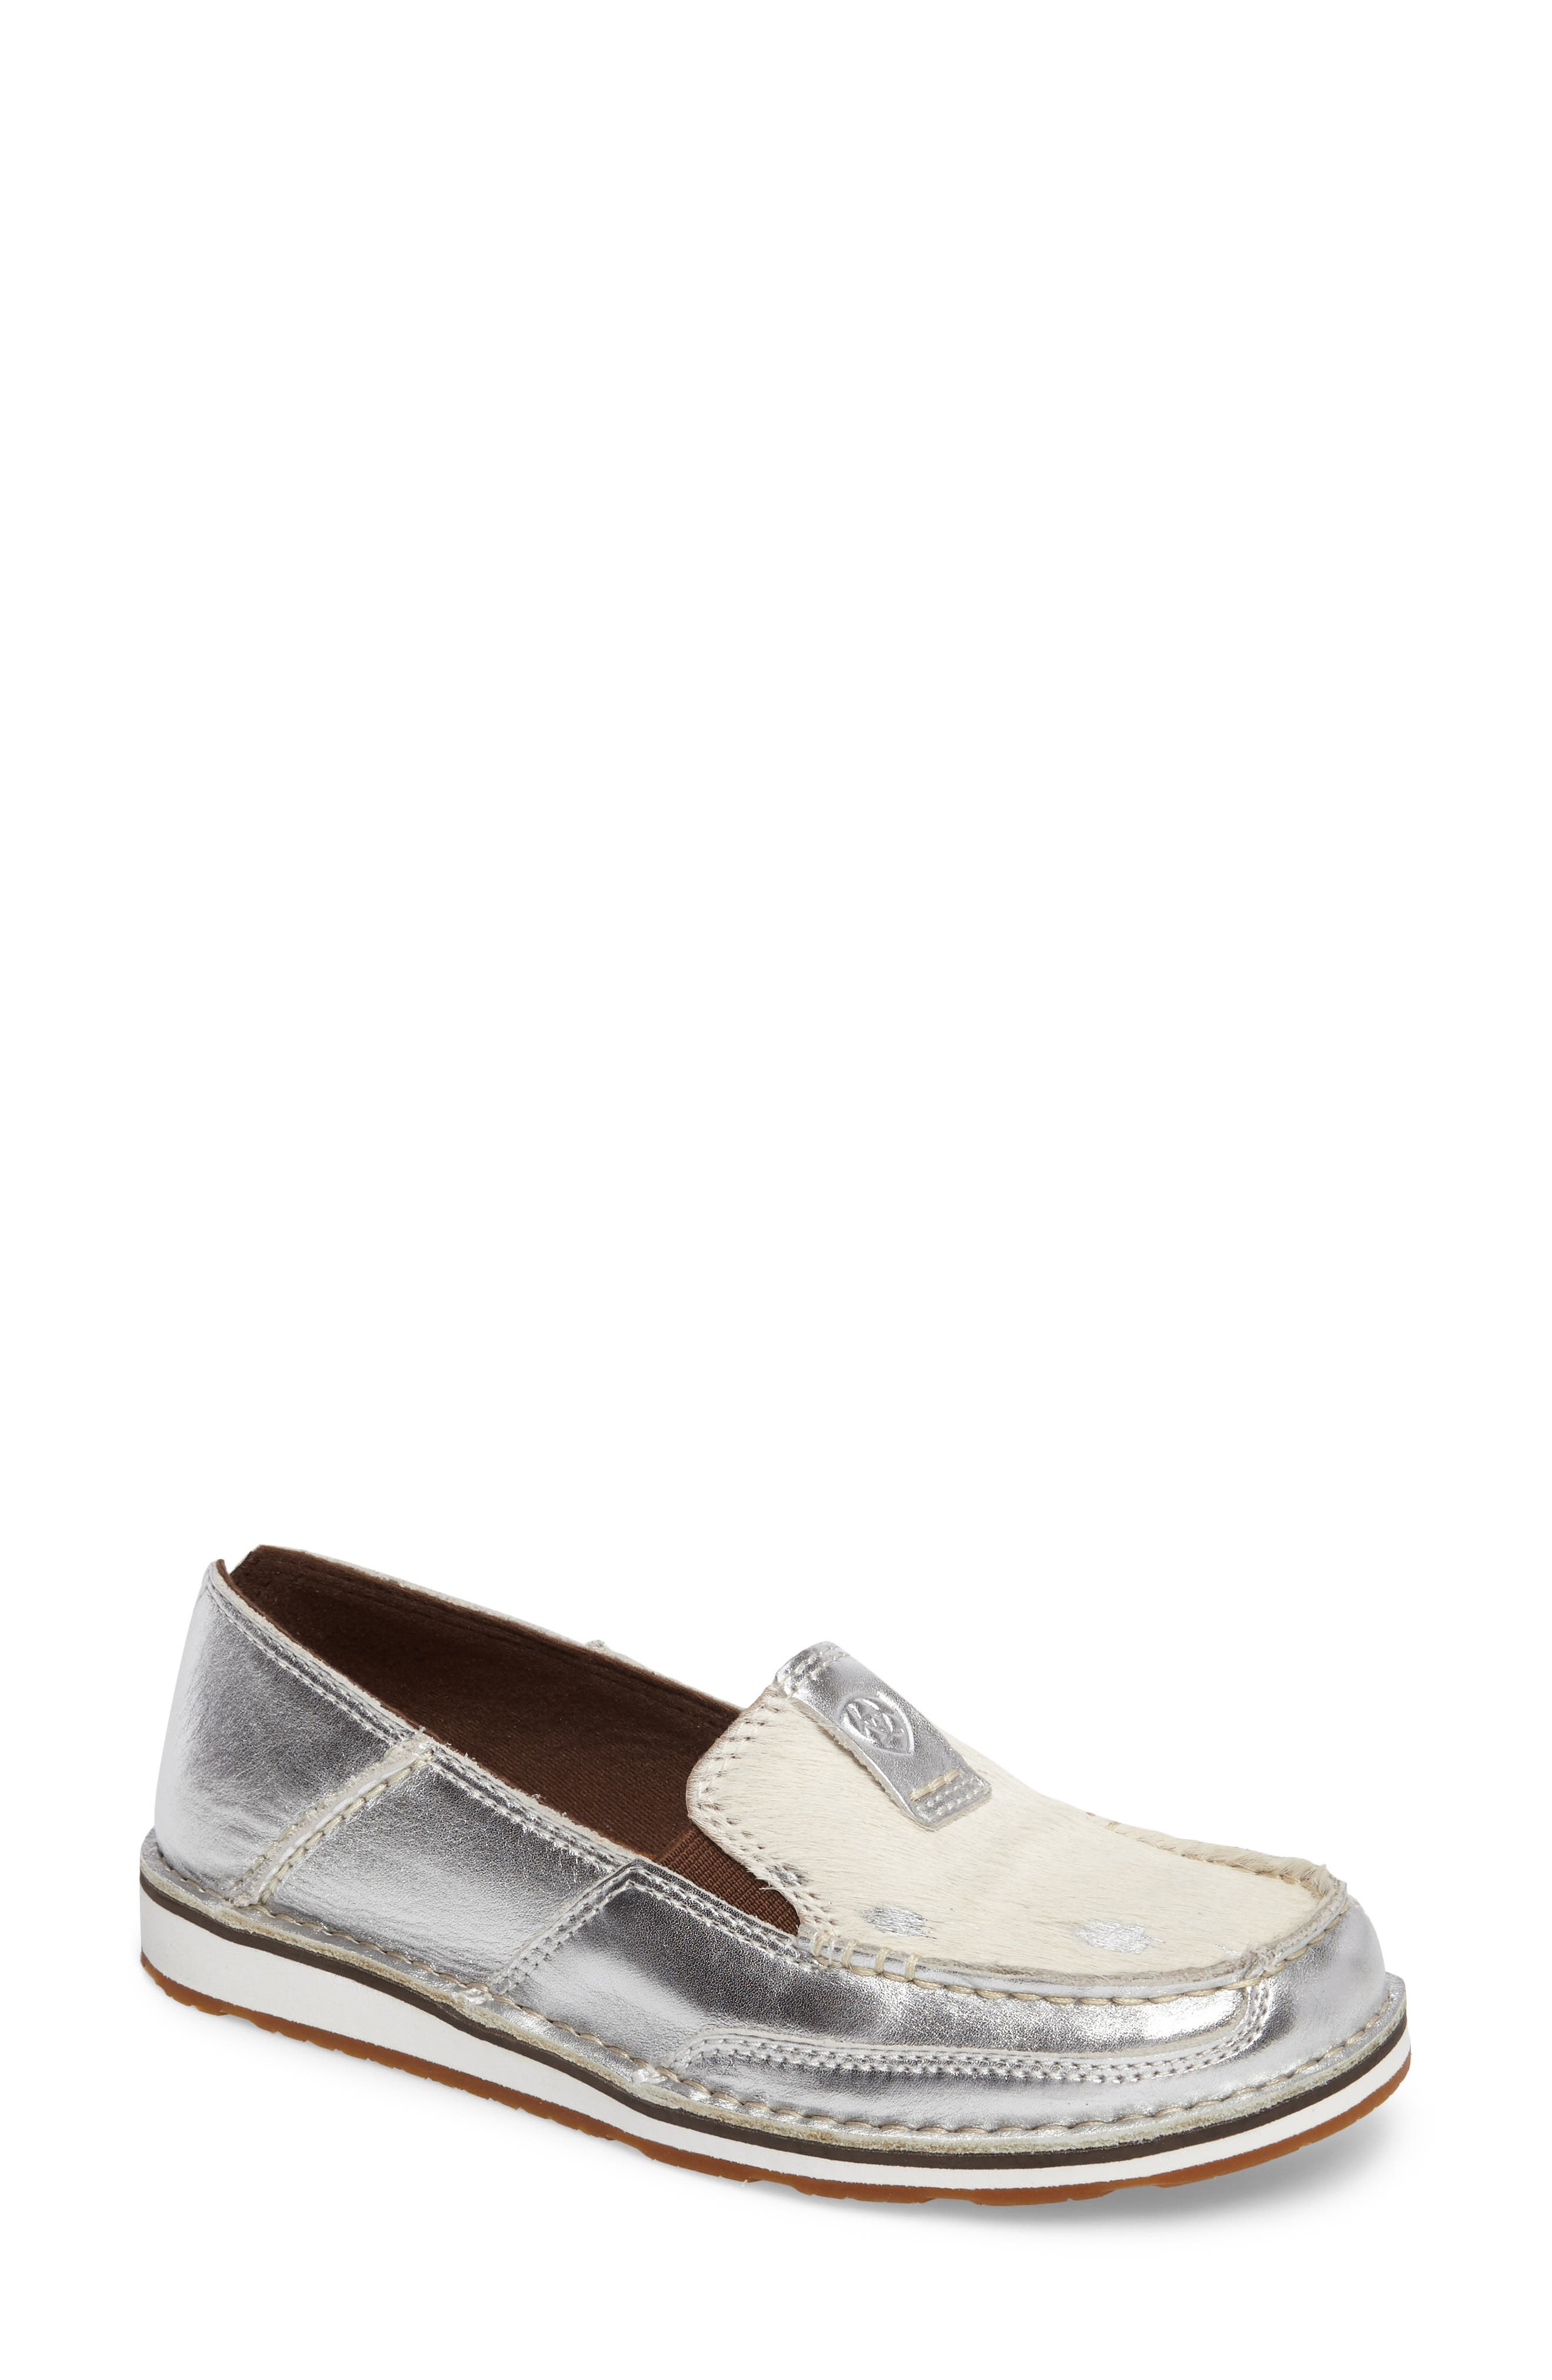 Main Image - Ariat Cruiser Genuine Calf Hair Slip-On Loafer (Women)